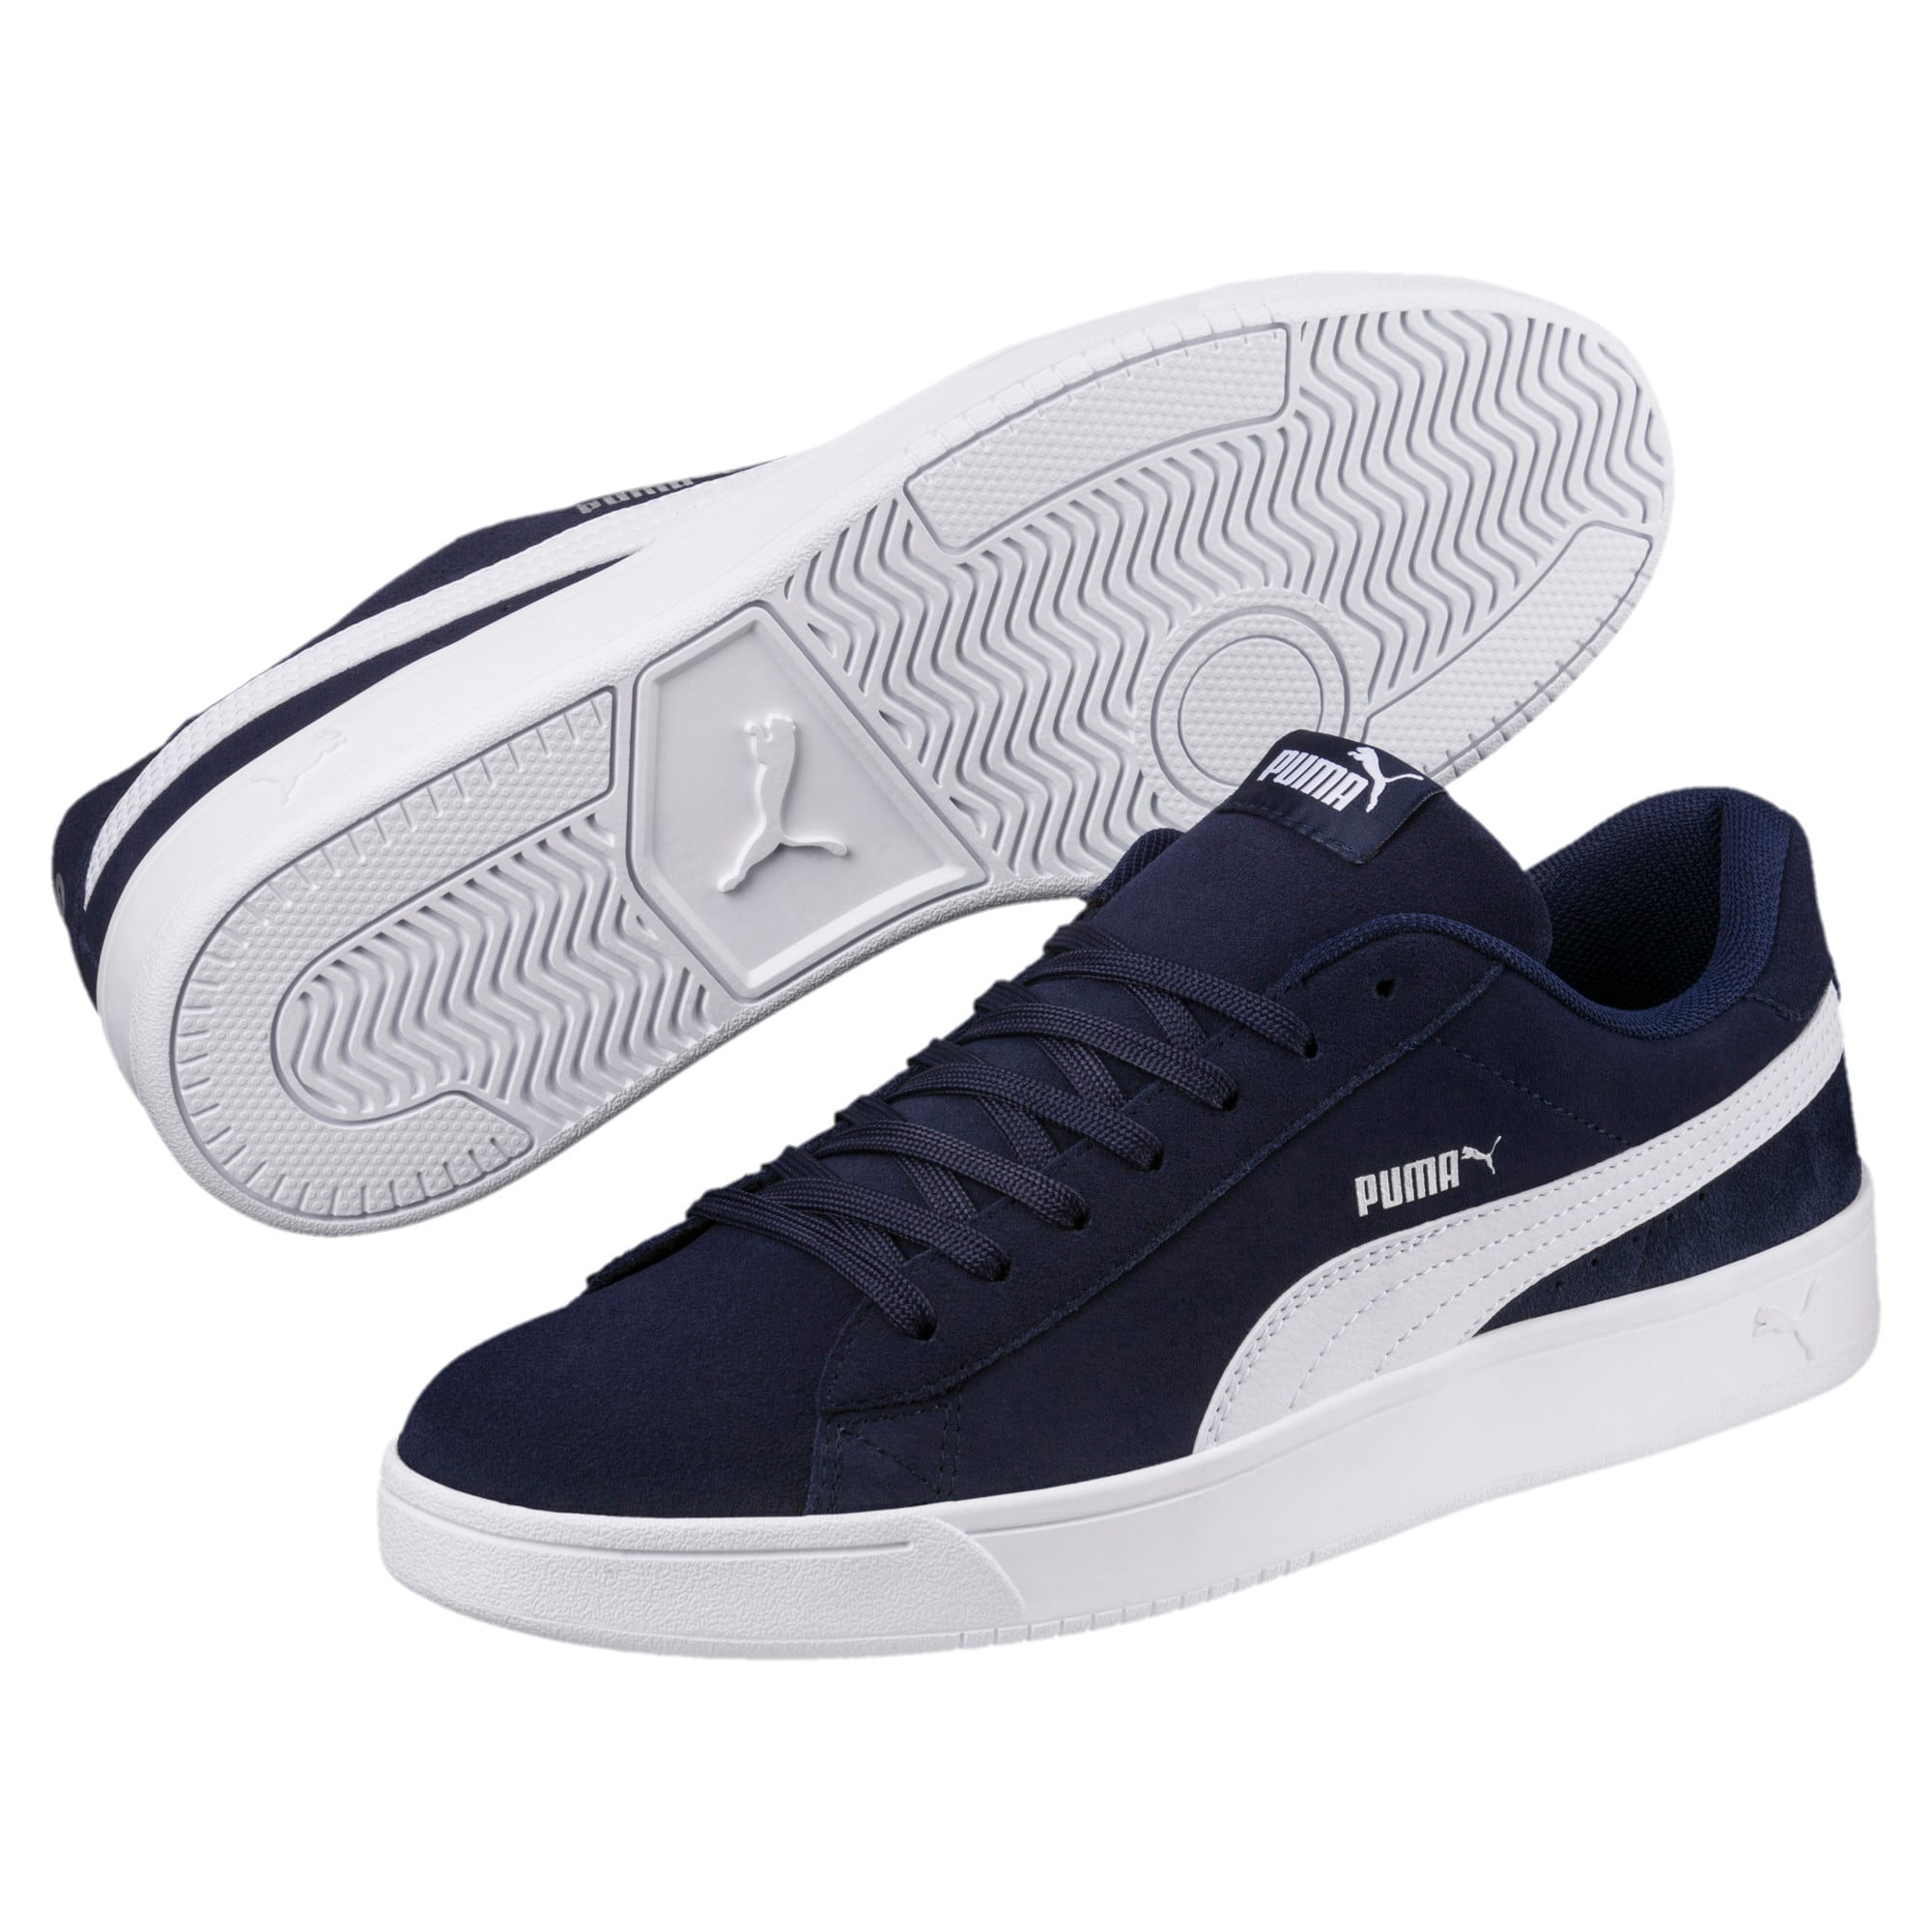 Thumbnail 6 of Court Breaker Derby Trainers, Peacoat-Puma White, medium-IND